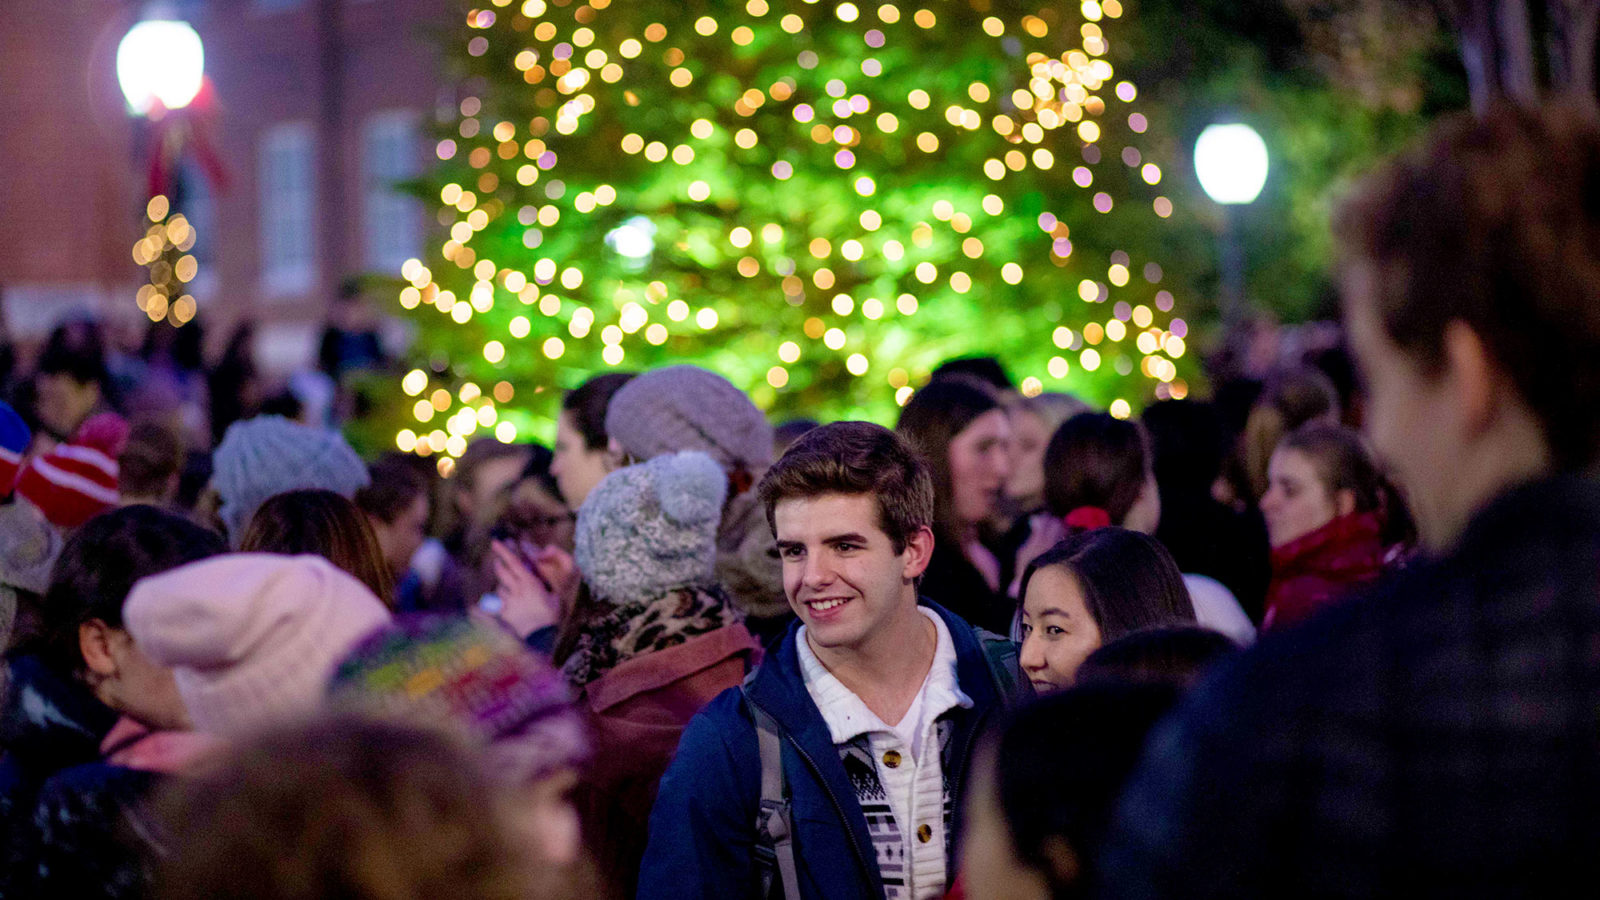 Students talk outside with a lit Christmas tree in the background.